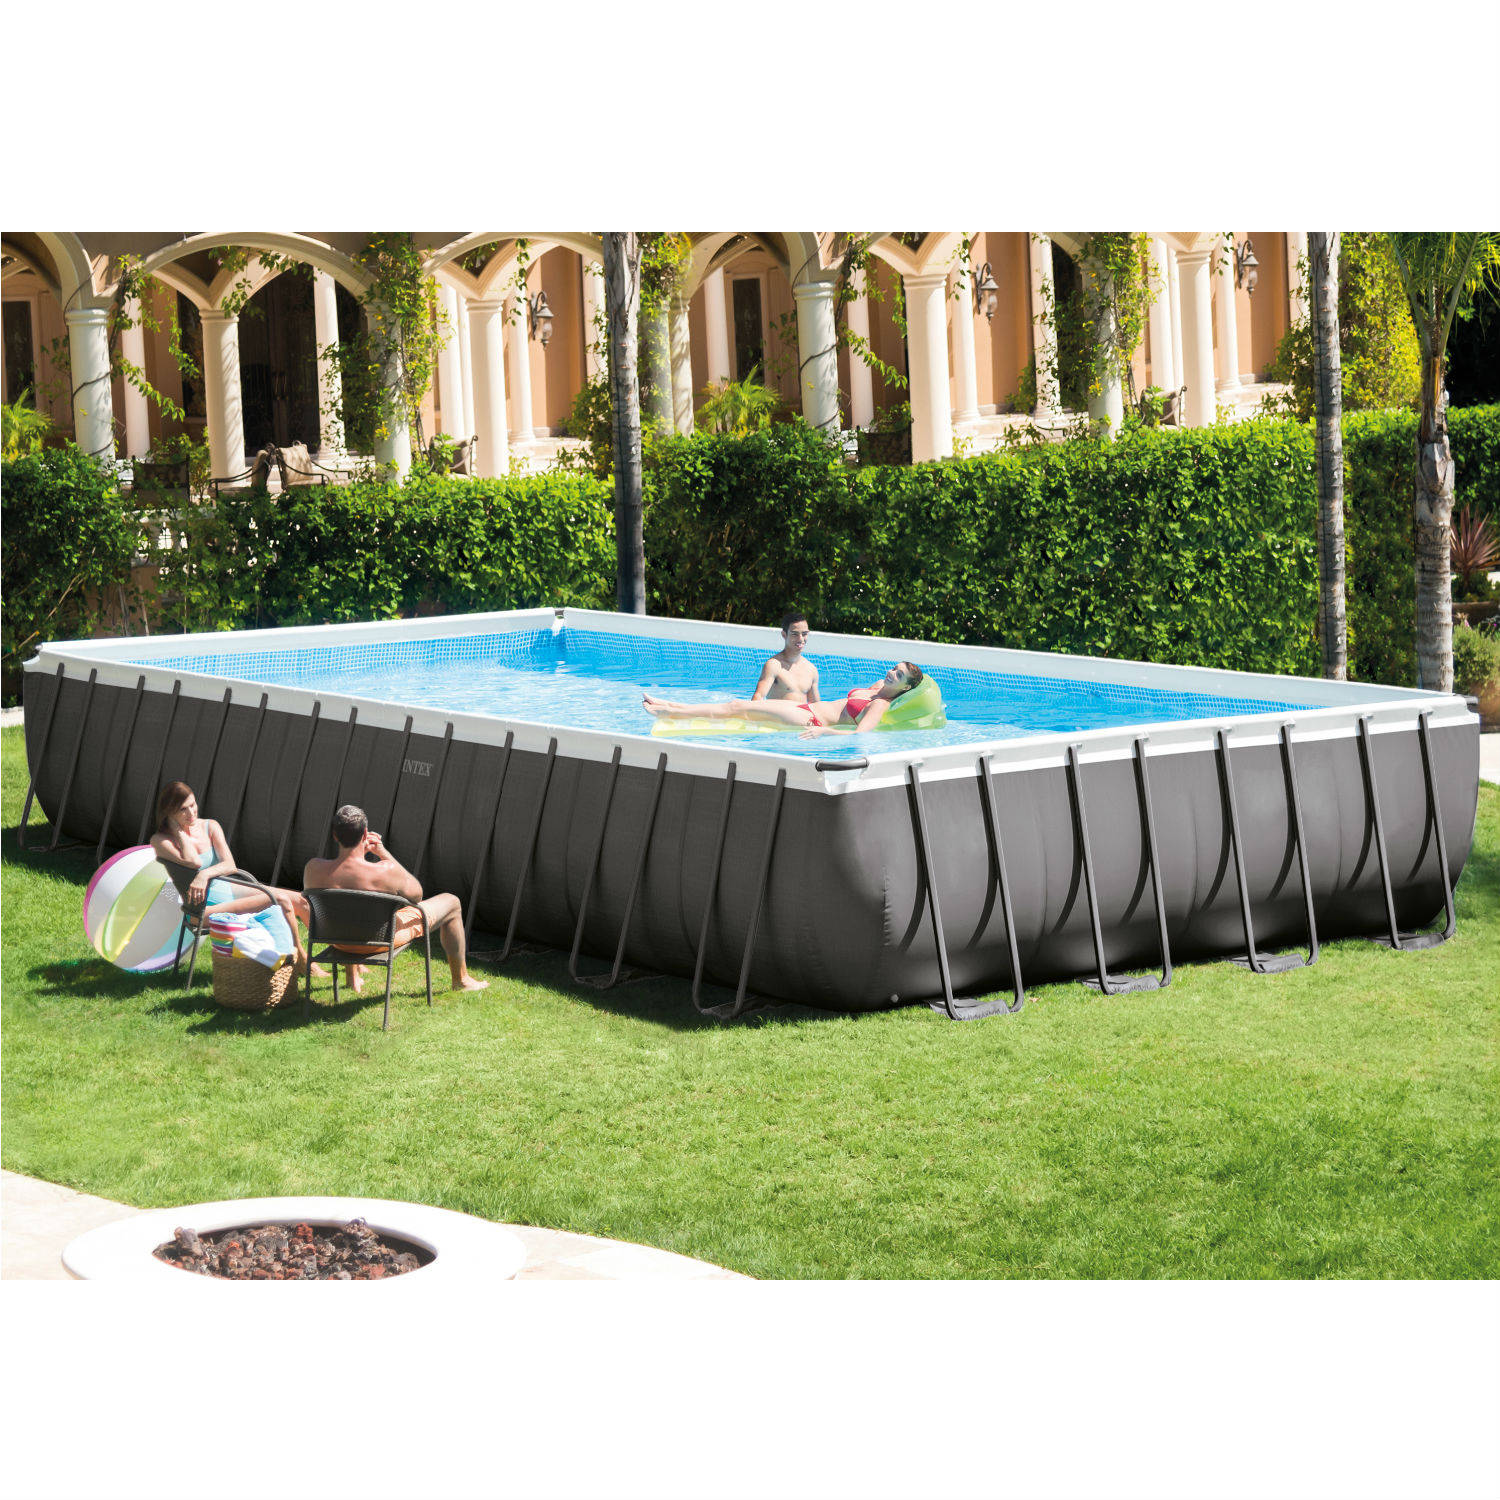 "Intex 32' x 16' x 52"" Ultra Frame Rectangular Above Ground Swimming Pool with Sand Filter Pump"